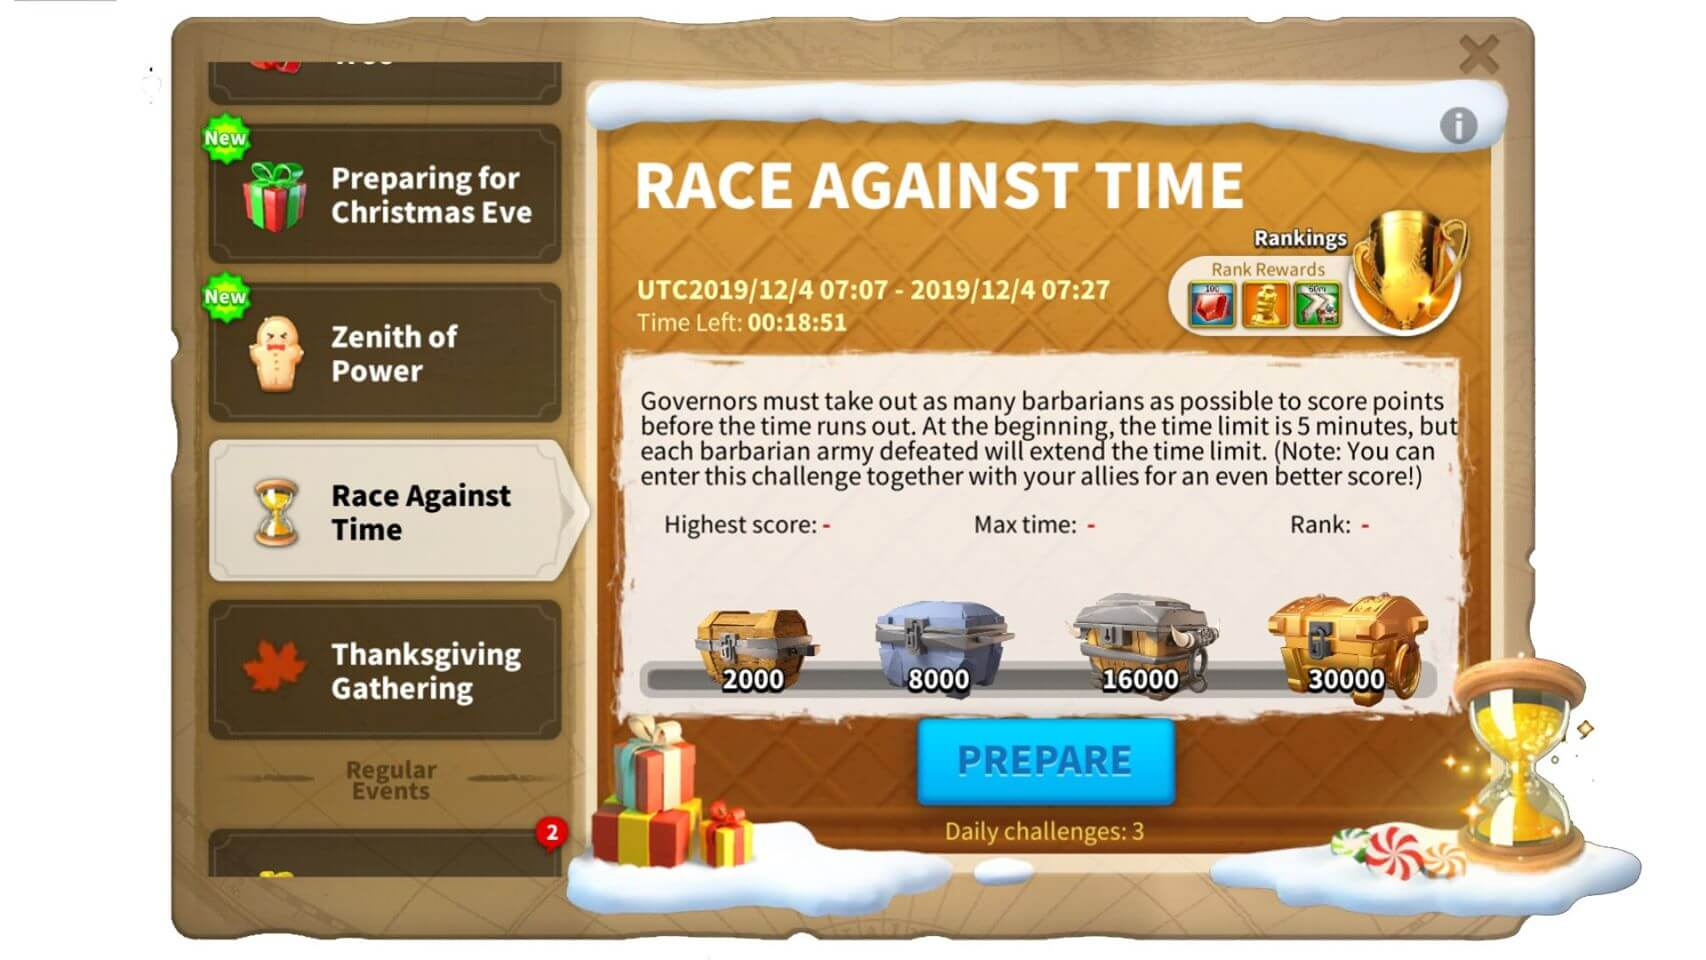 race against time event